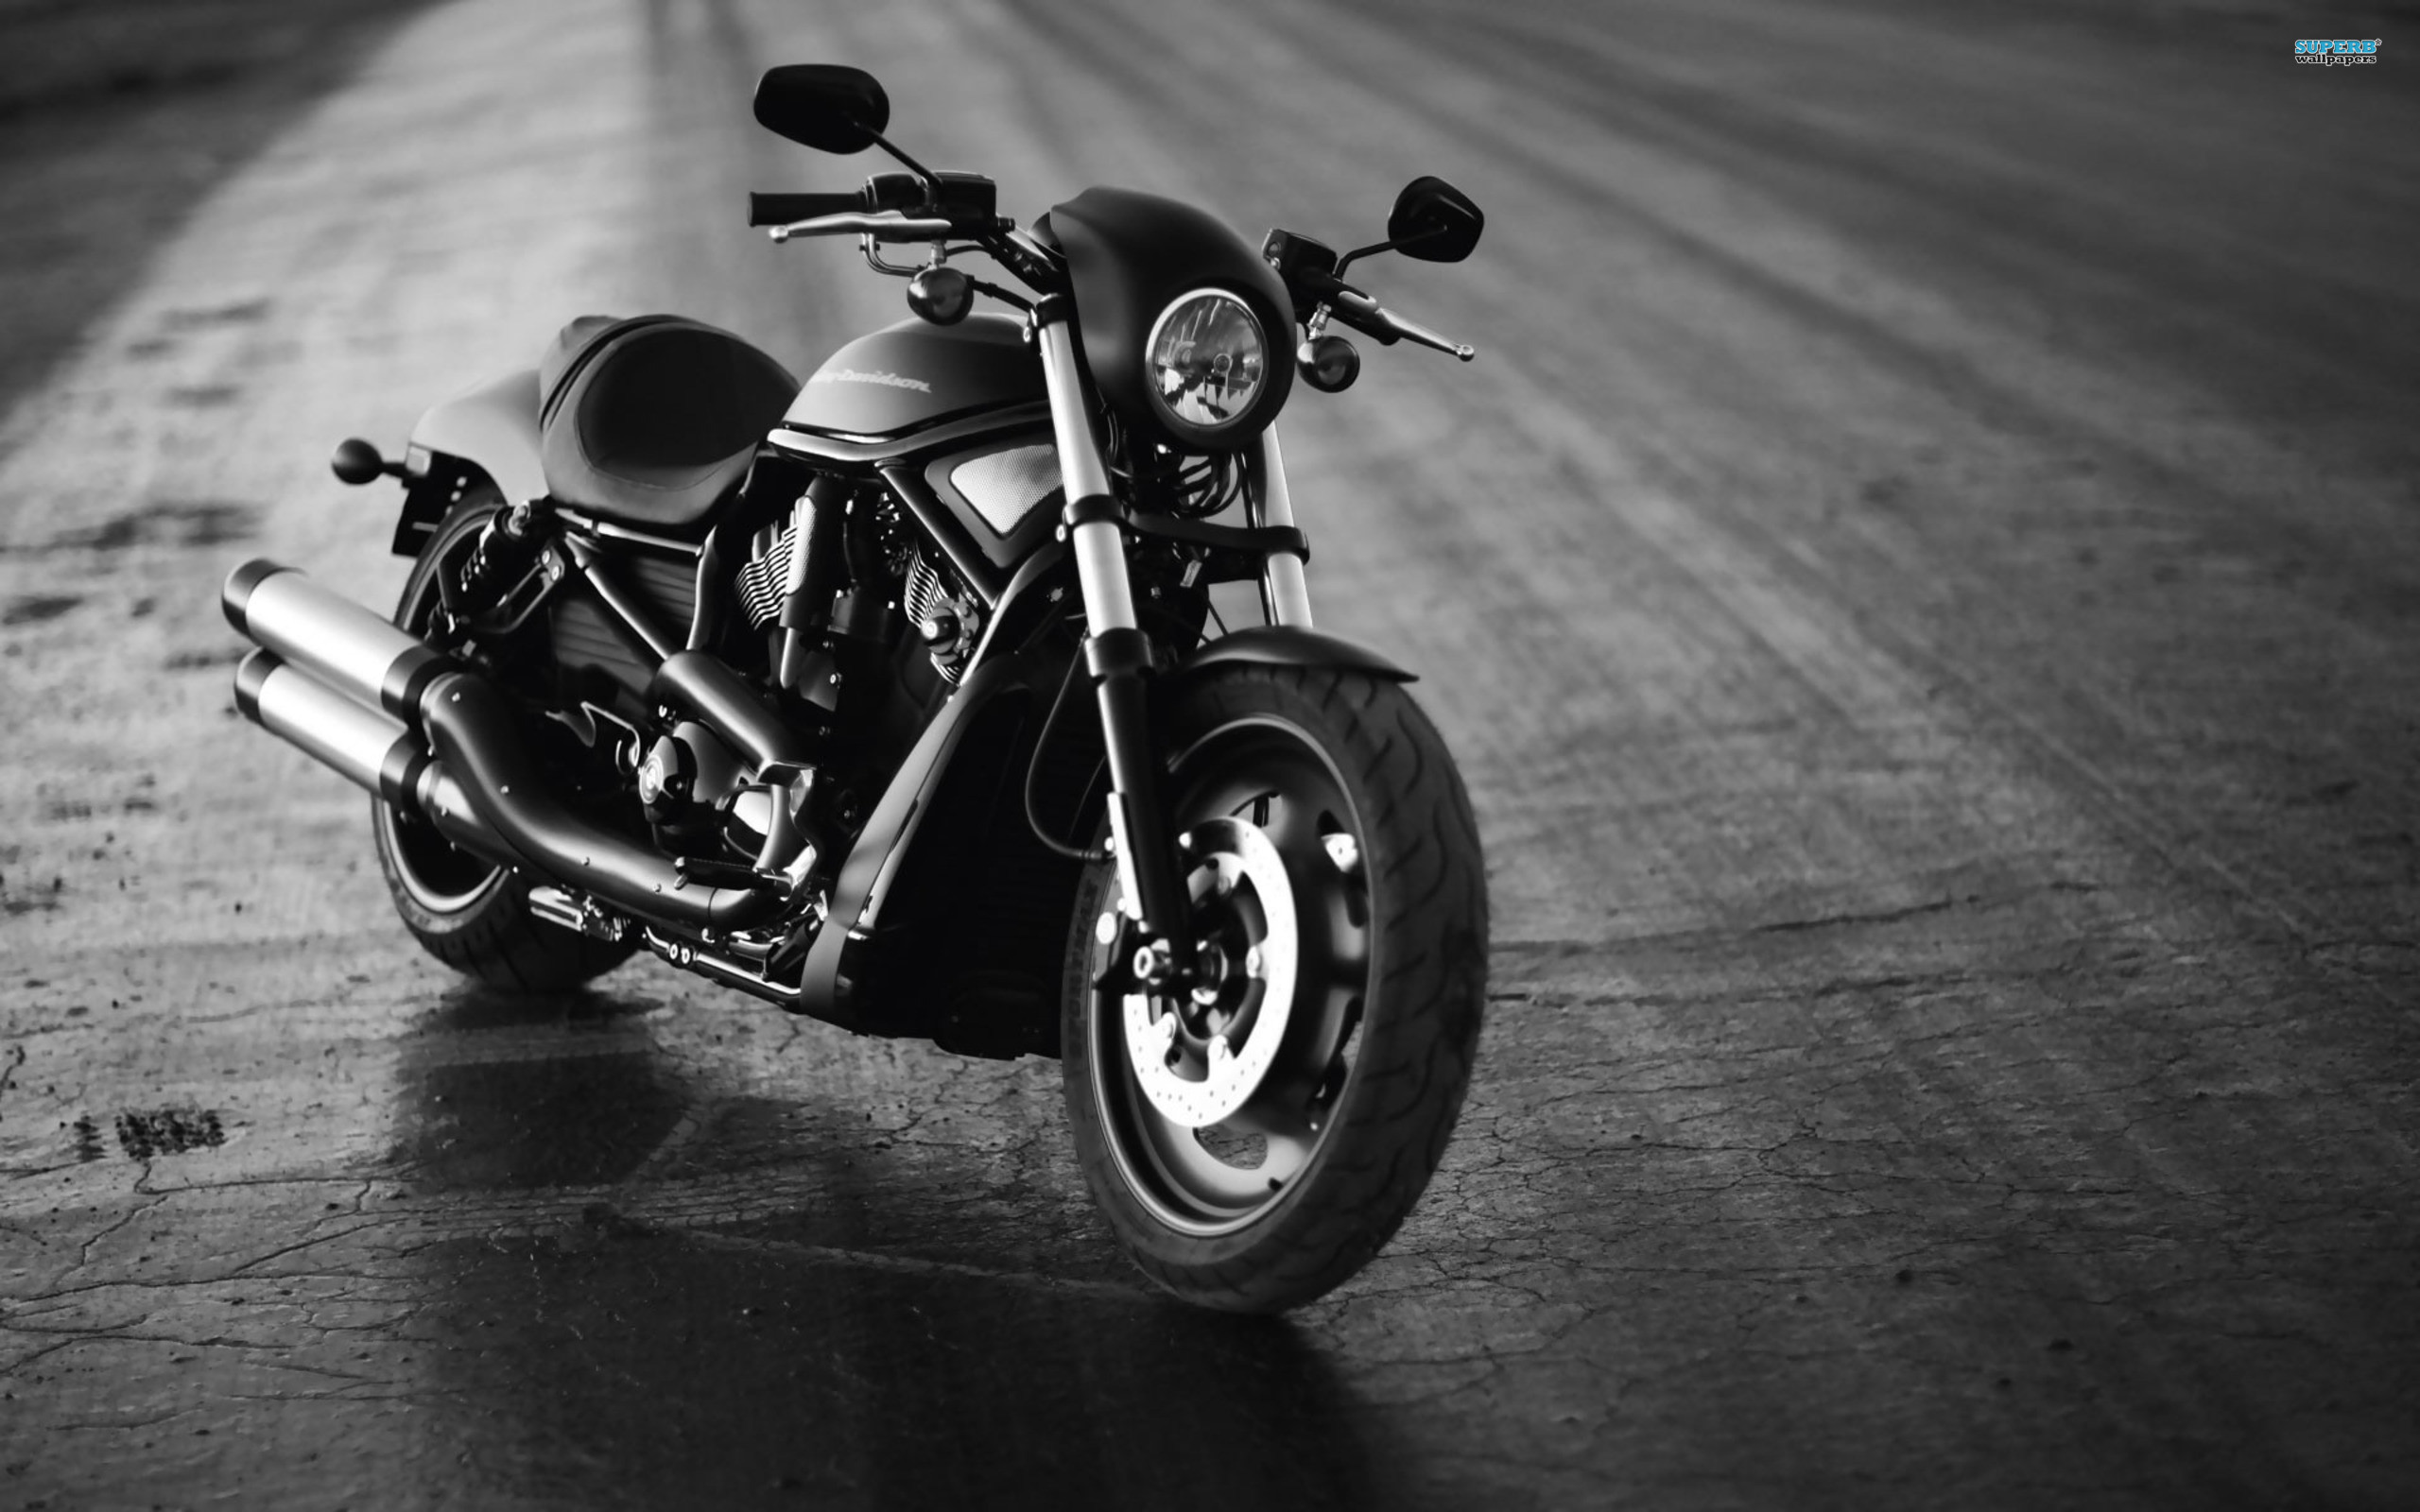 2560x1600 Ultra HD 4K Harley-davidson Wallpapers HD, Desktop Backgrounds .